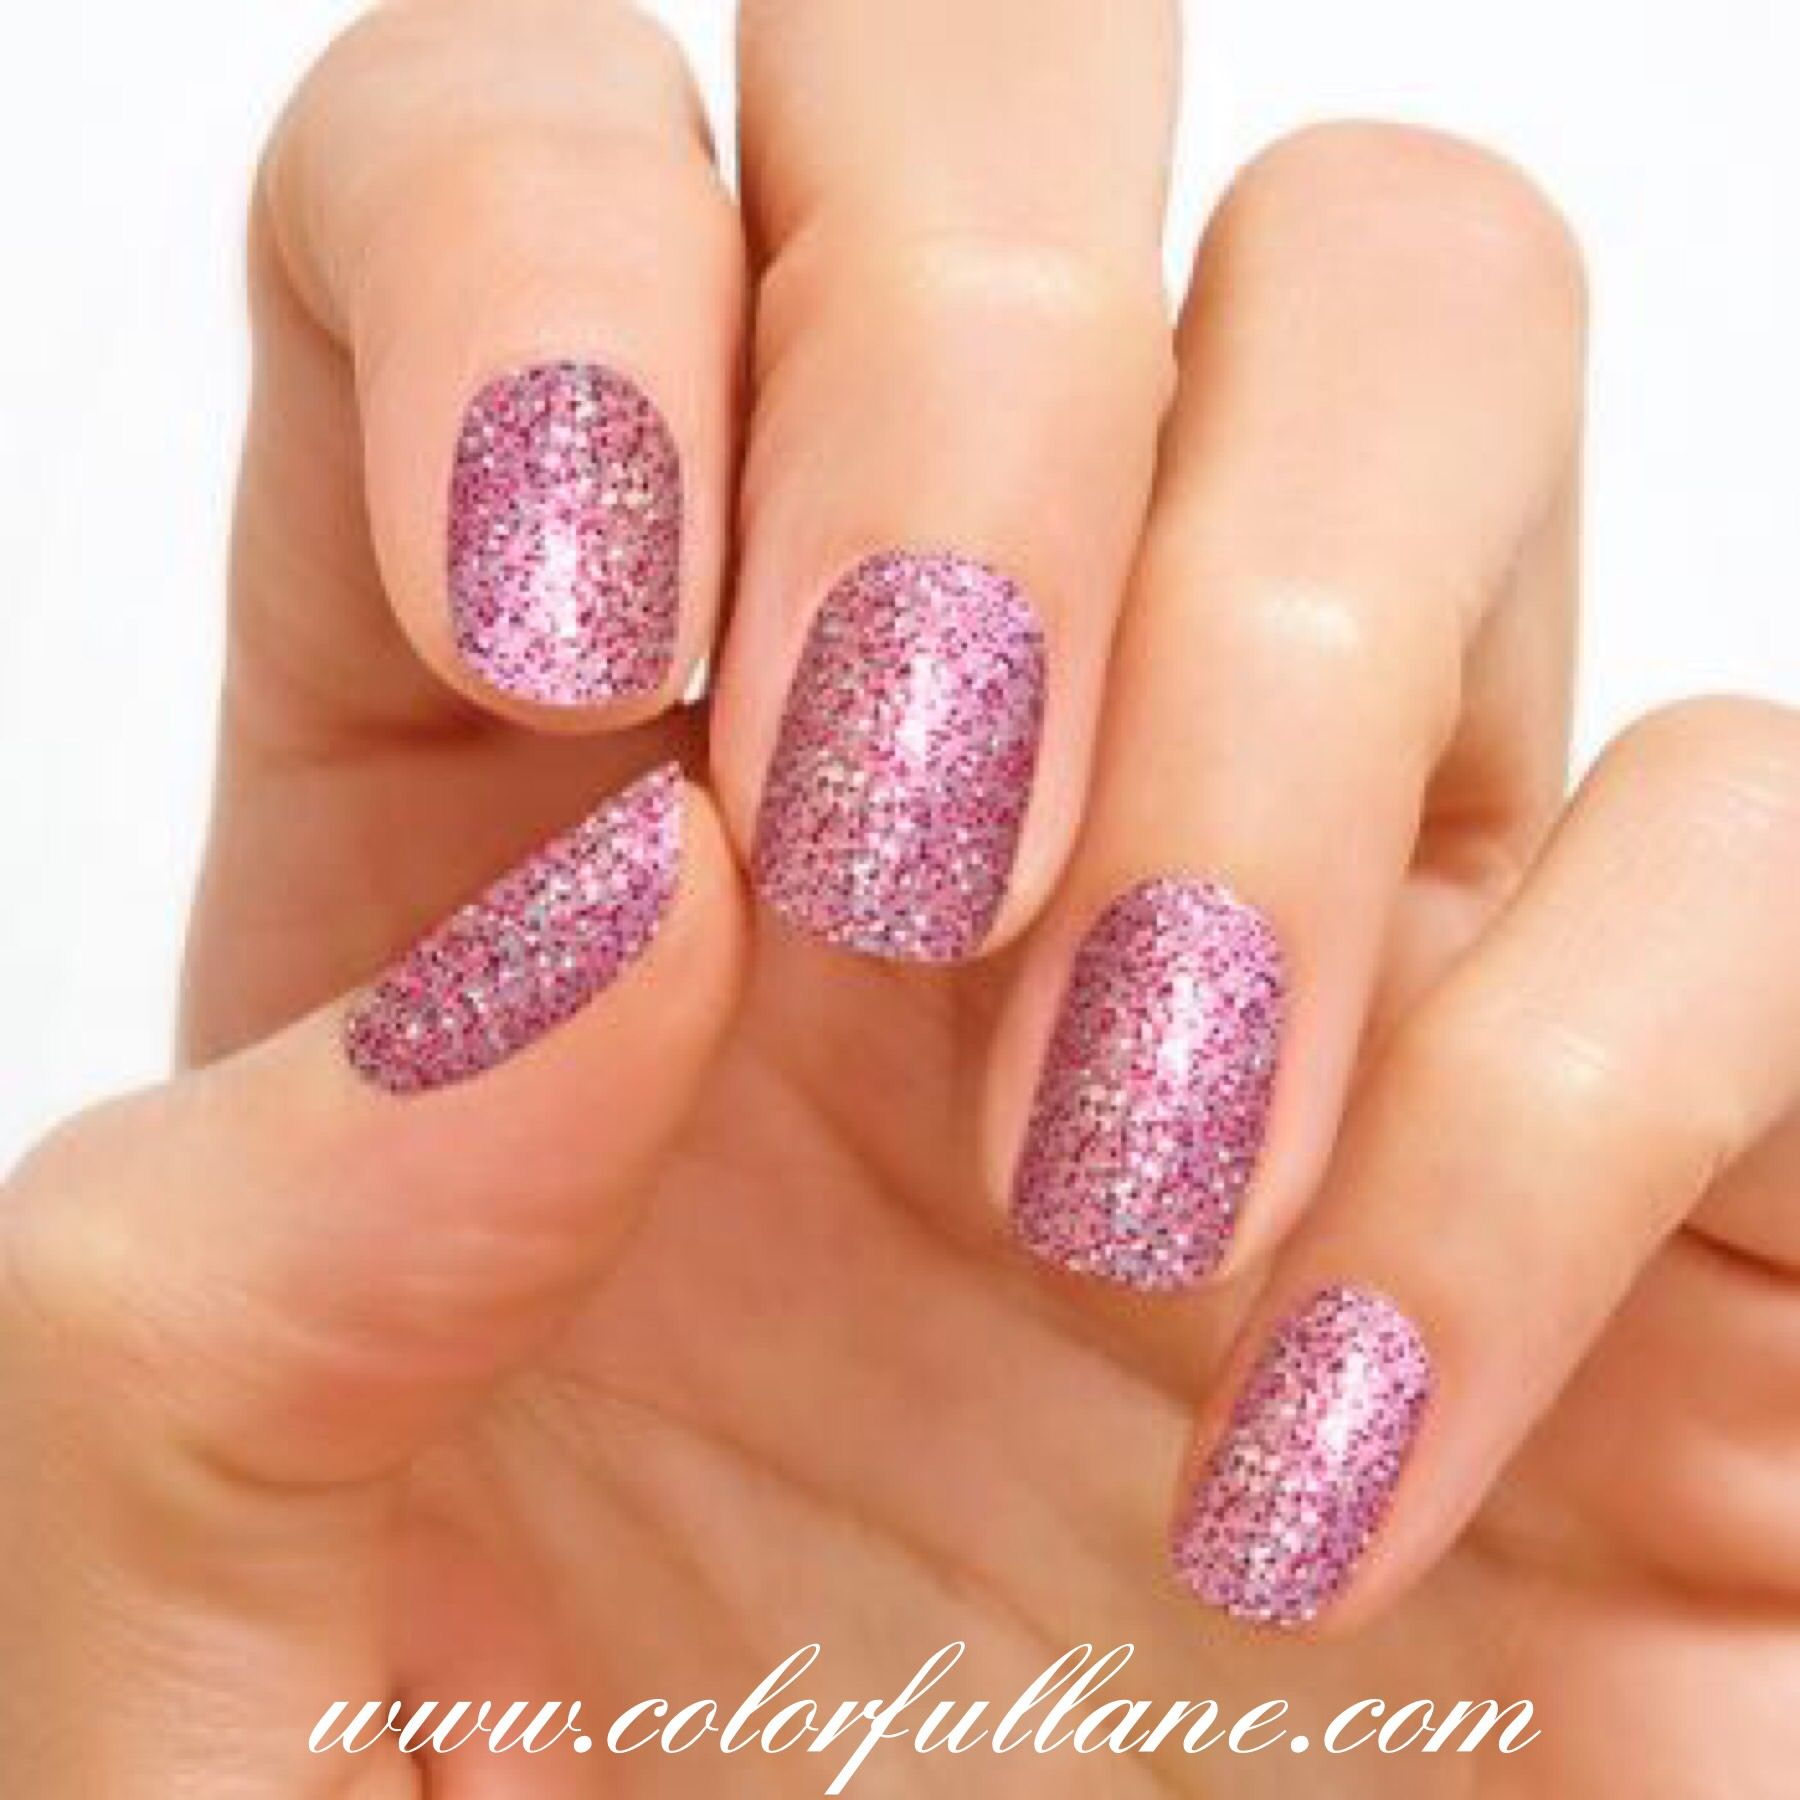 Venetian Masquerade by Color Street is a very popular glitter nail ...